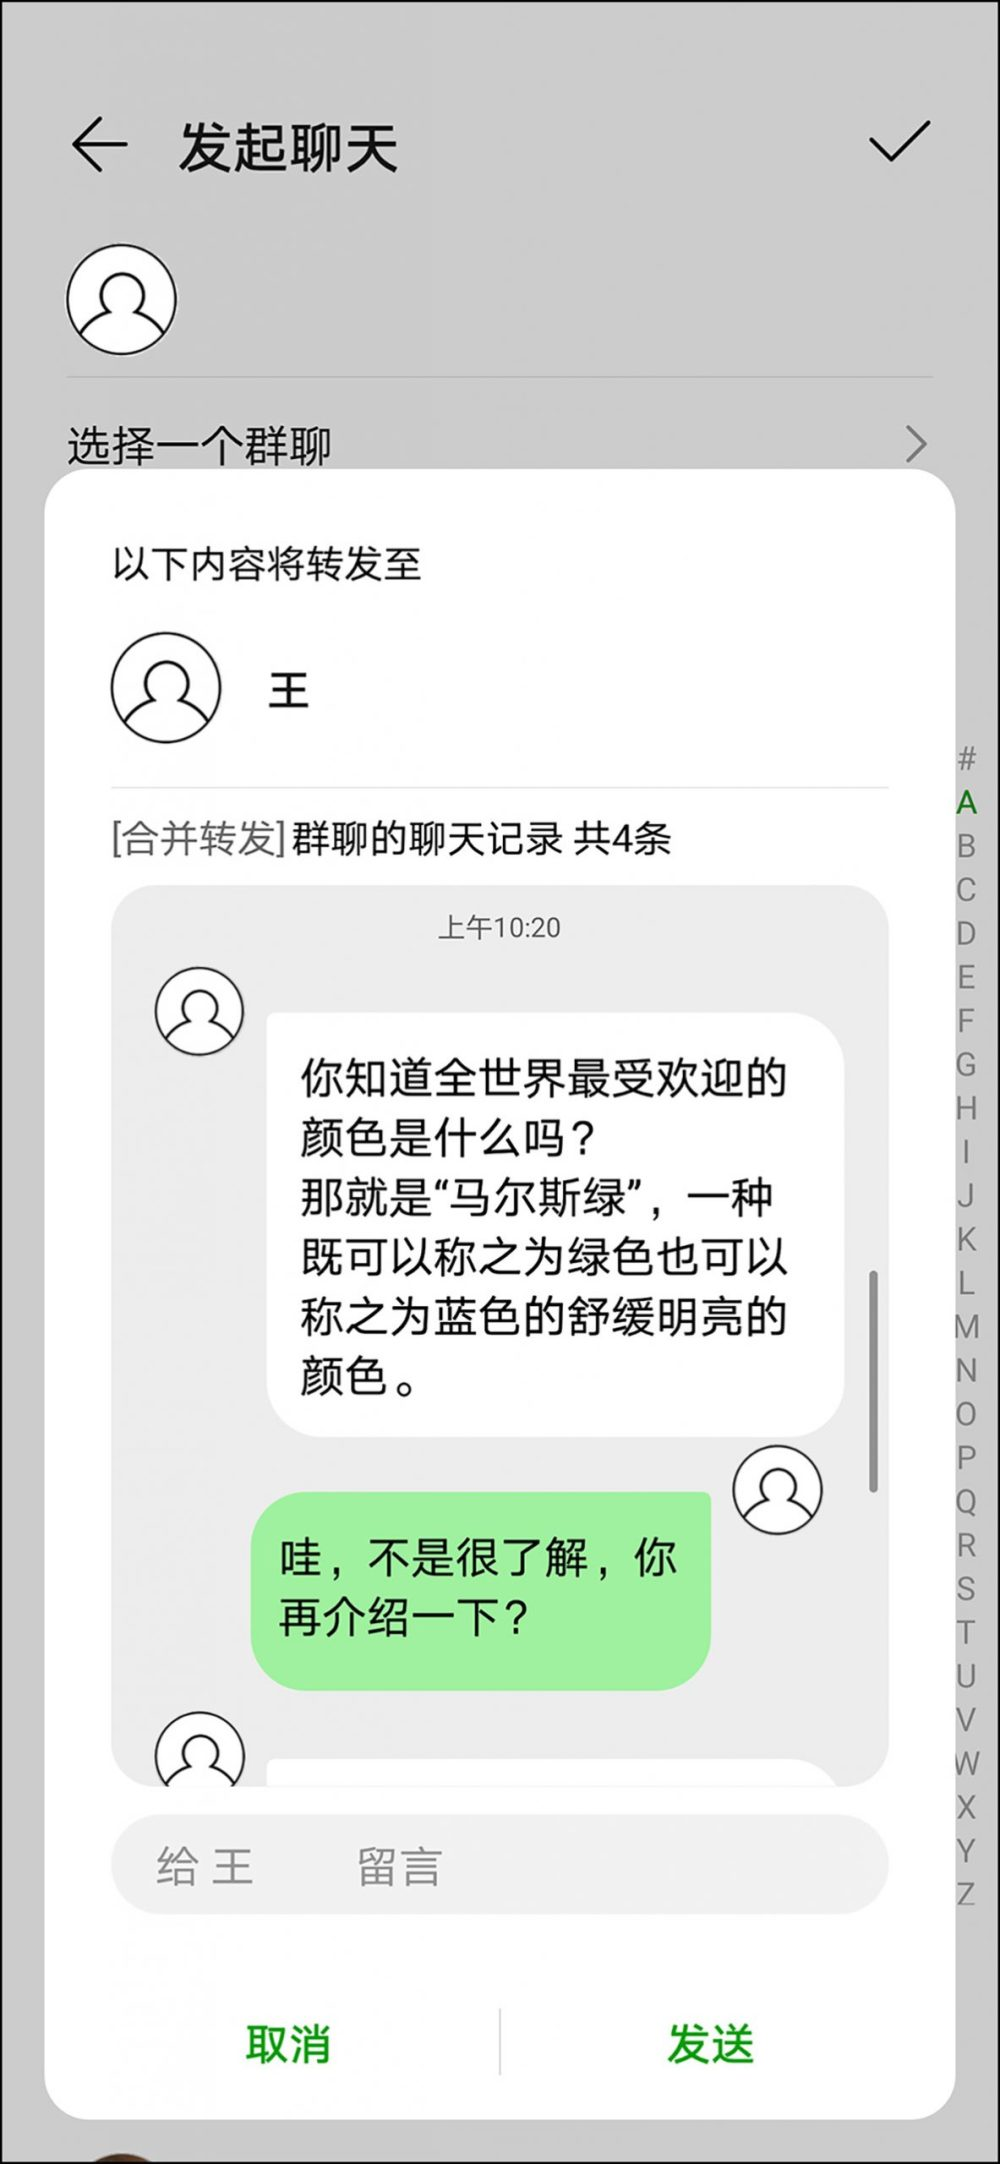 Huawei chat message forwarding patent is authorized -2